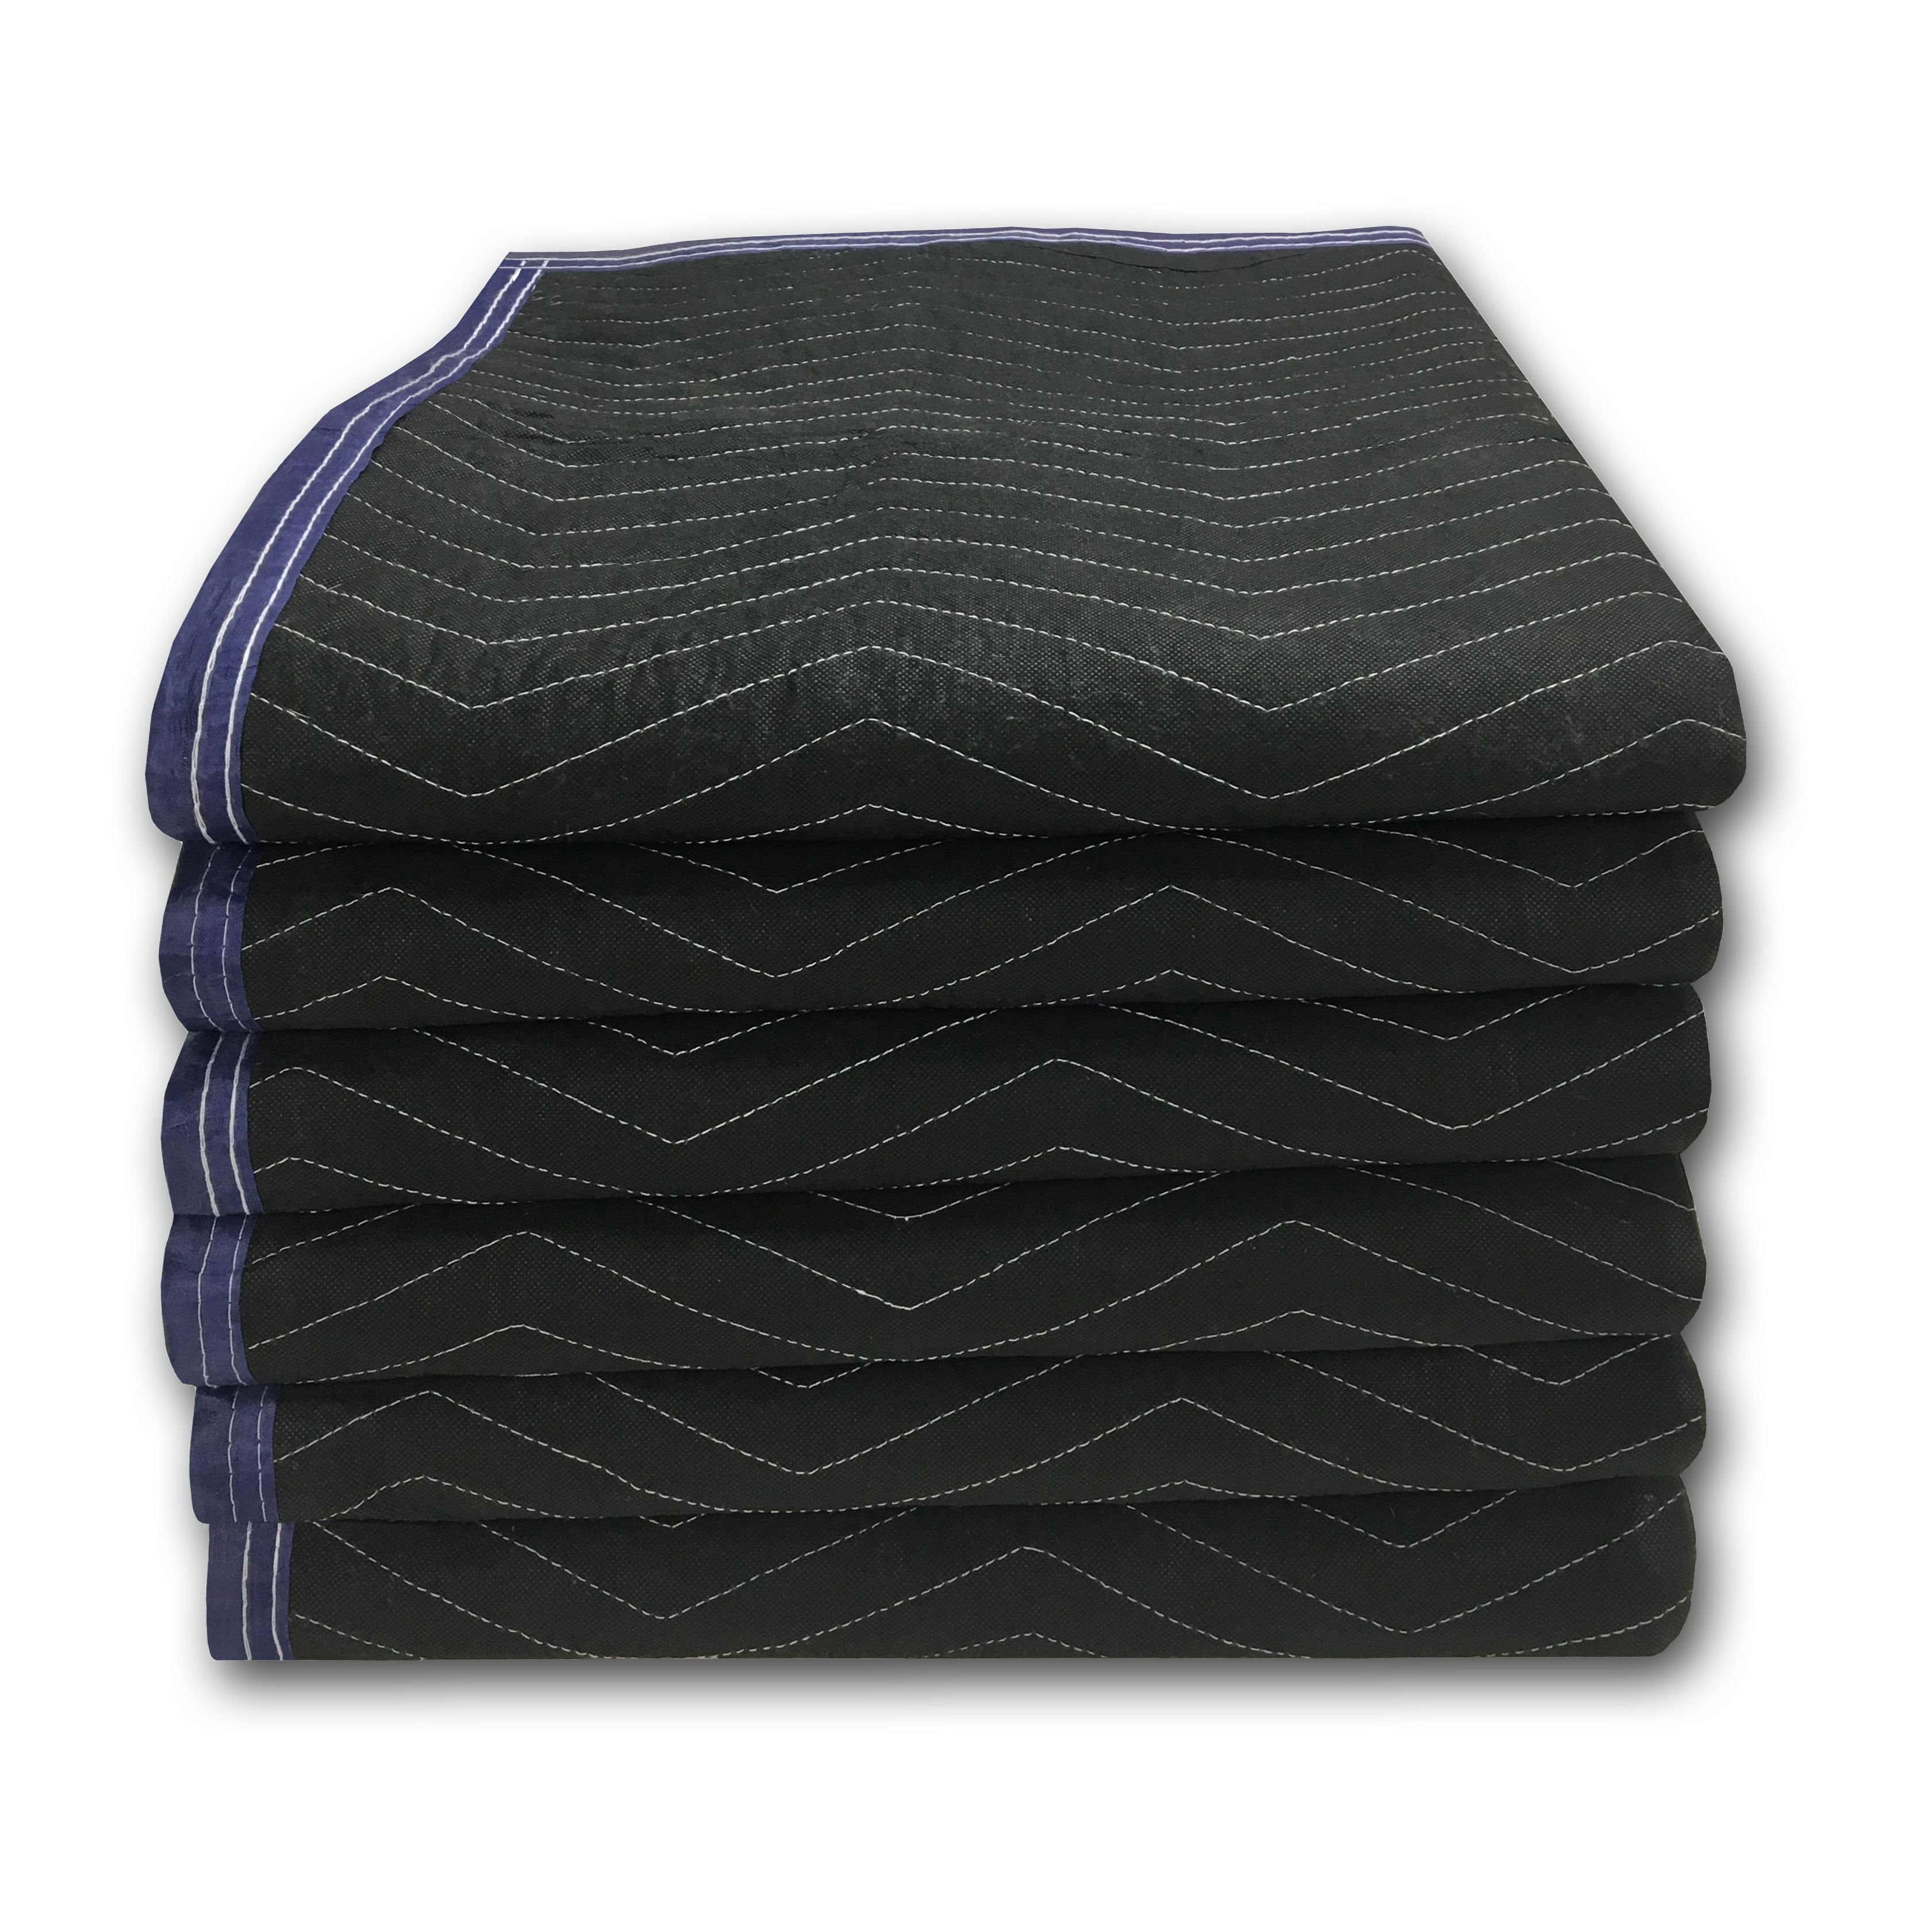 Uboxes Performance Moving Blankets, 72 x 80 in, 4.5lbs each, 6 Pack